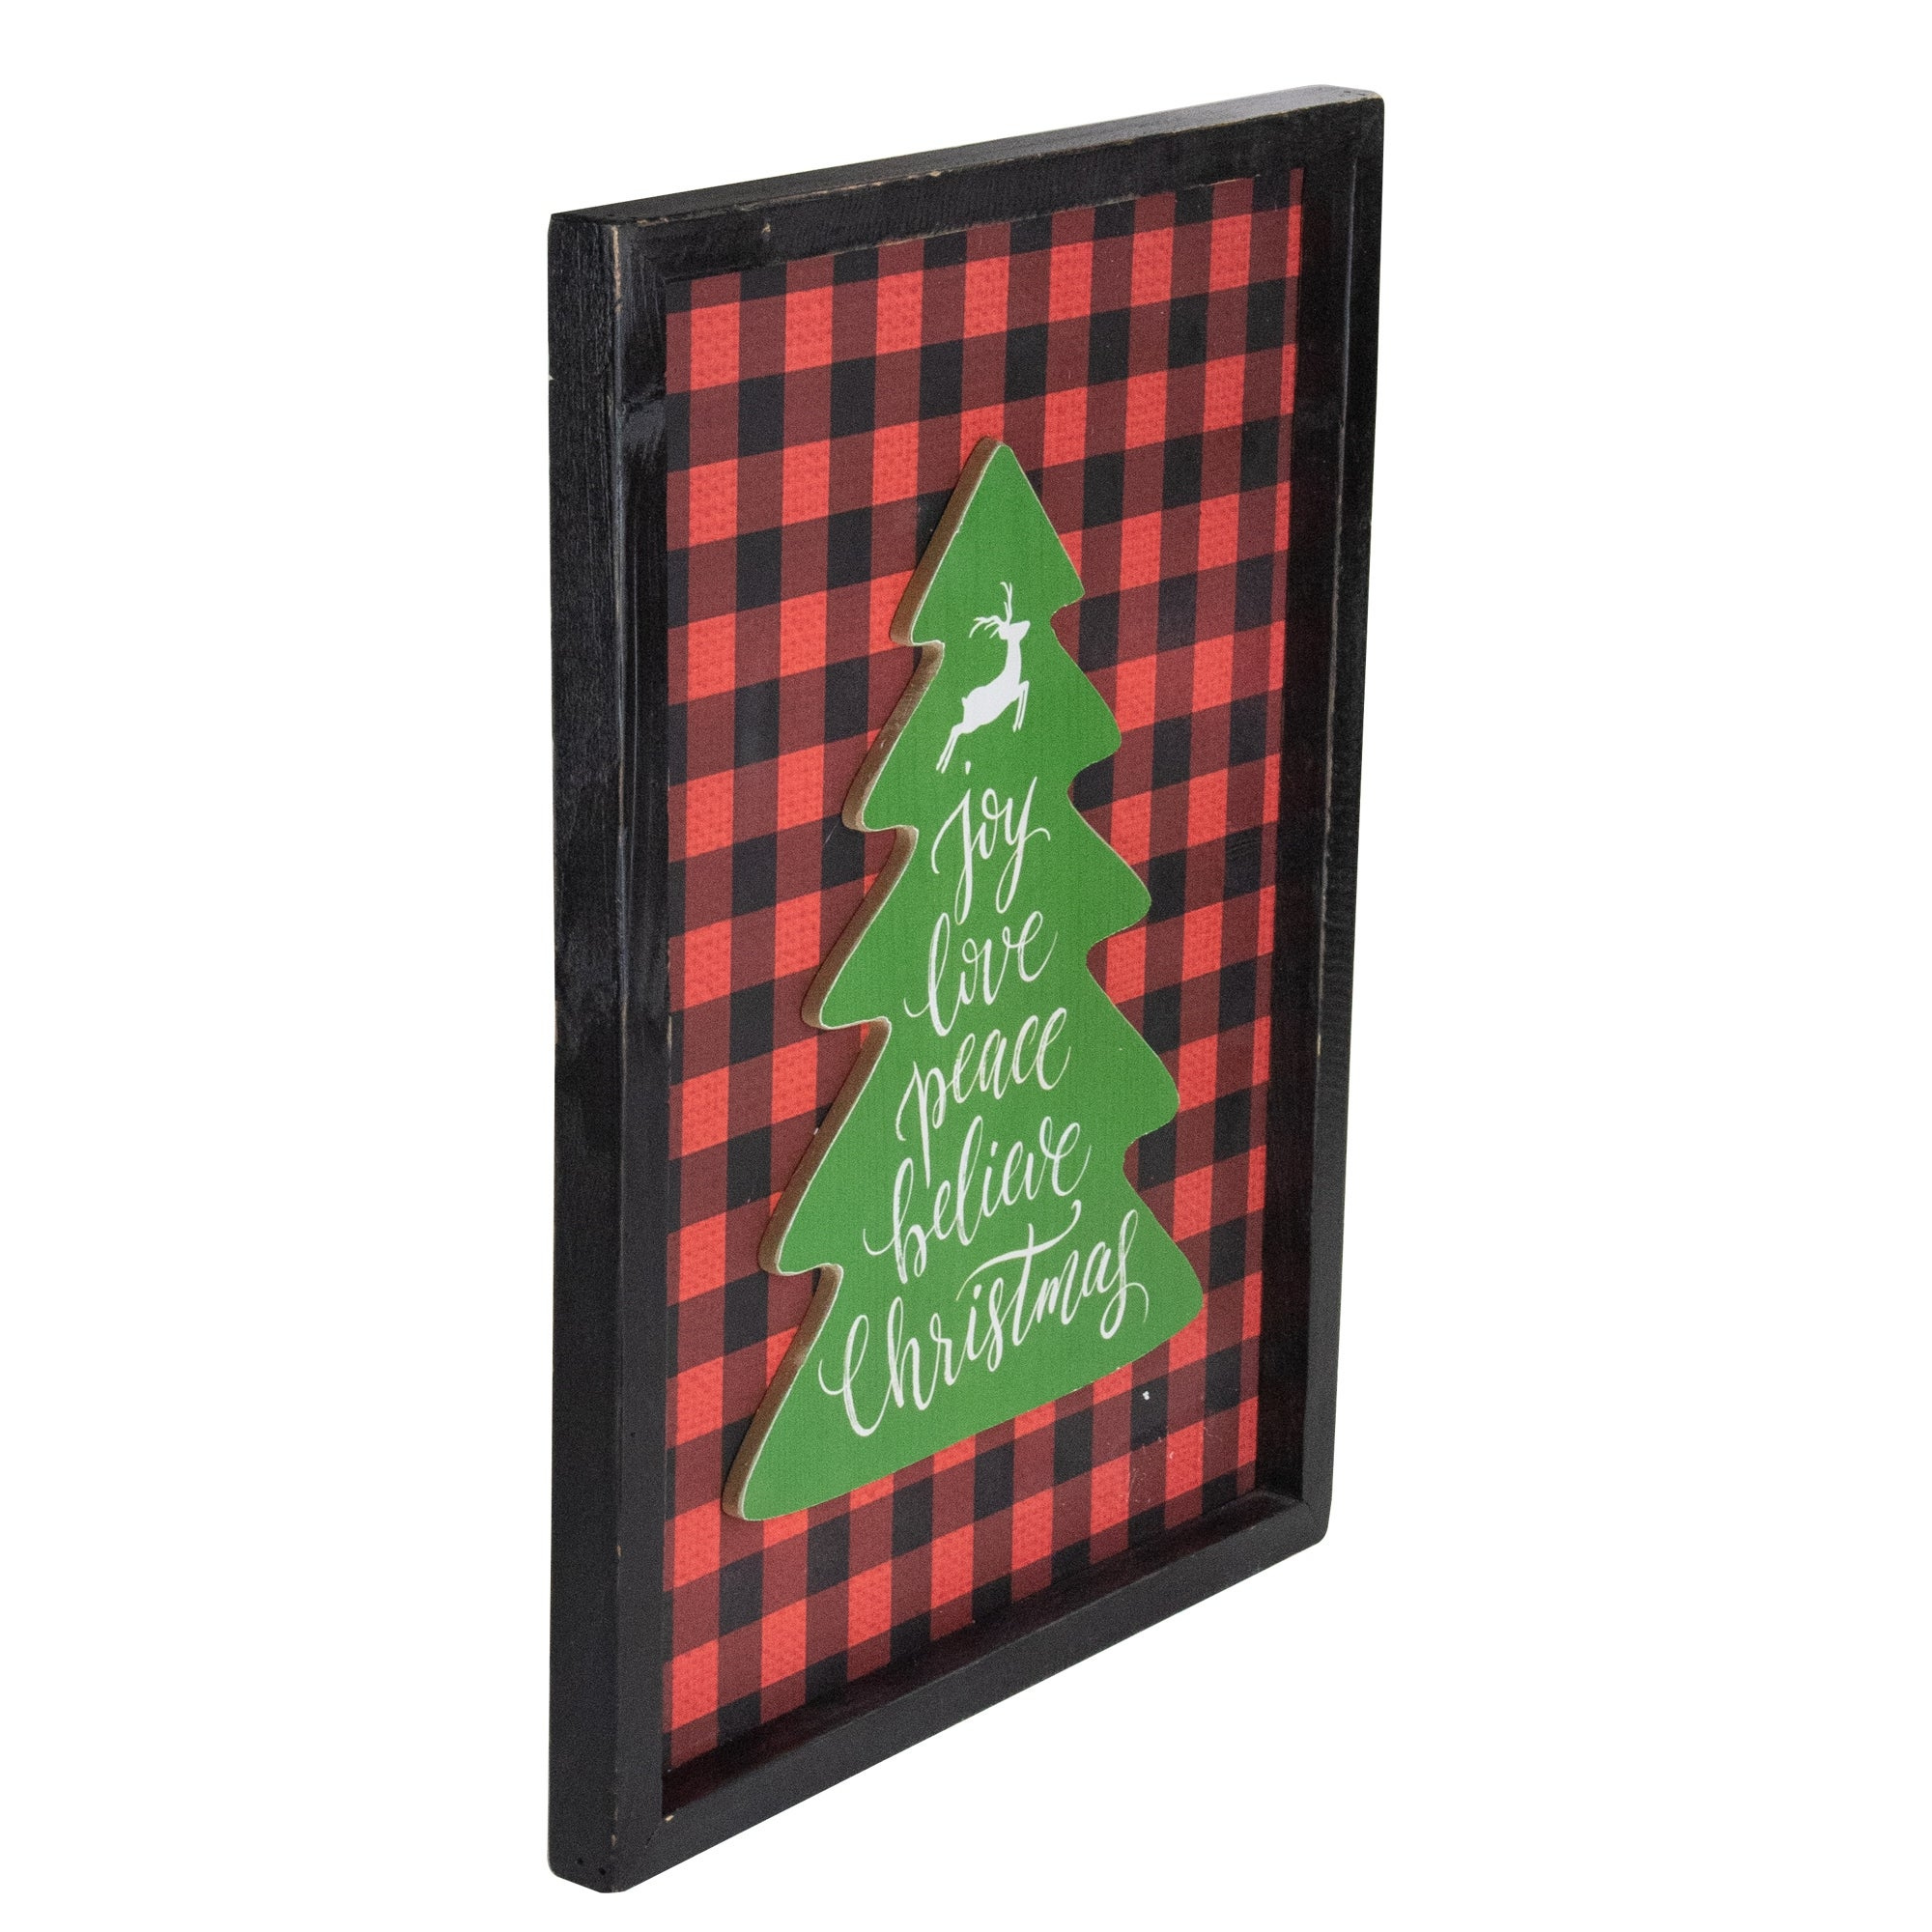 16 Red And Black Buffalo Plaid Christmas Tree Shadow Box Wall Plaque Overstock 32394124